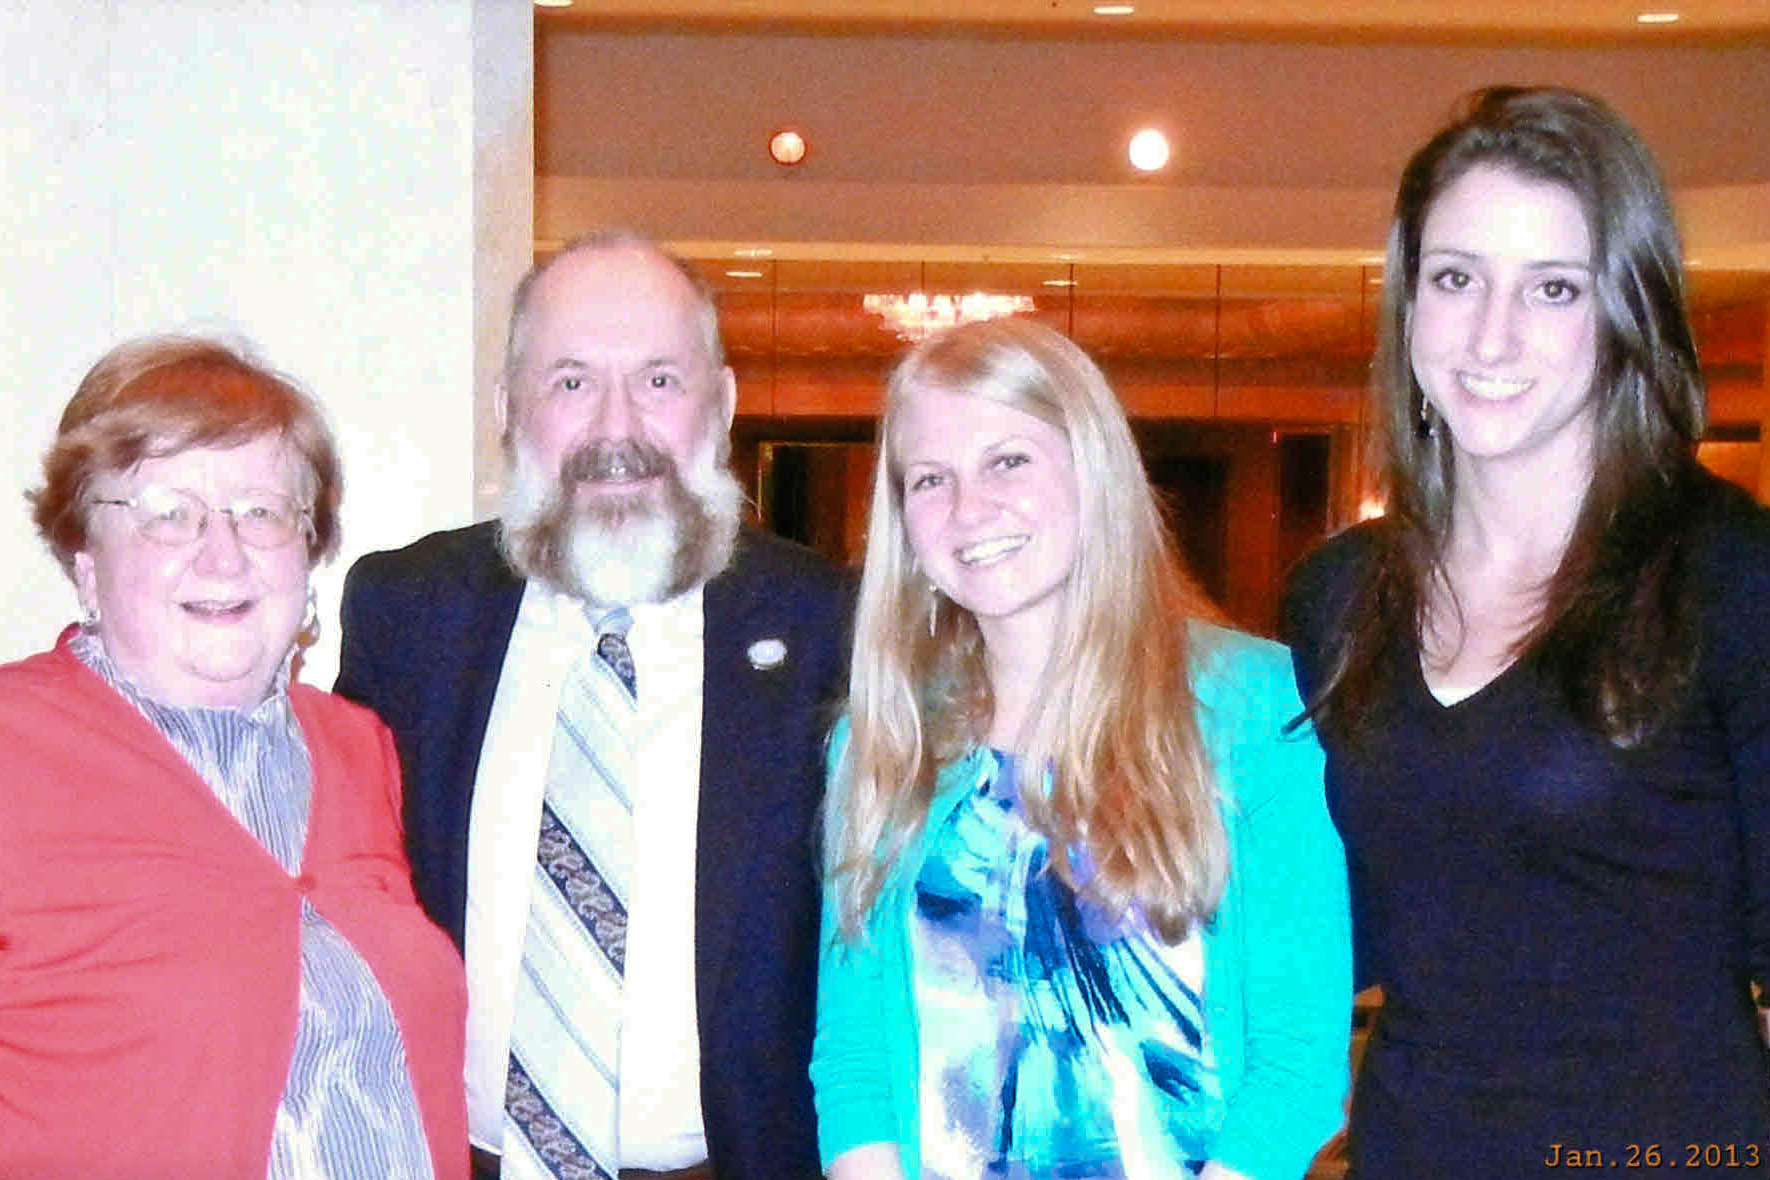 Presenters at last month's  American Correctional Association (ACA) Winter Conference in Houston, Texas. From left: Janet Kramer, James Welch, Caitlyn Jackson, and Kyle Dopfel.